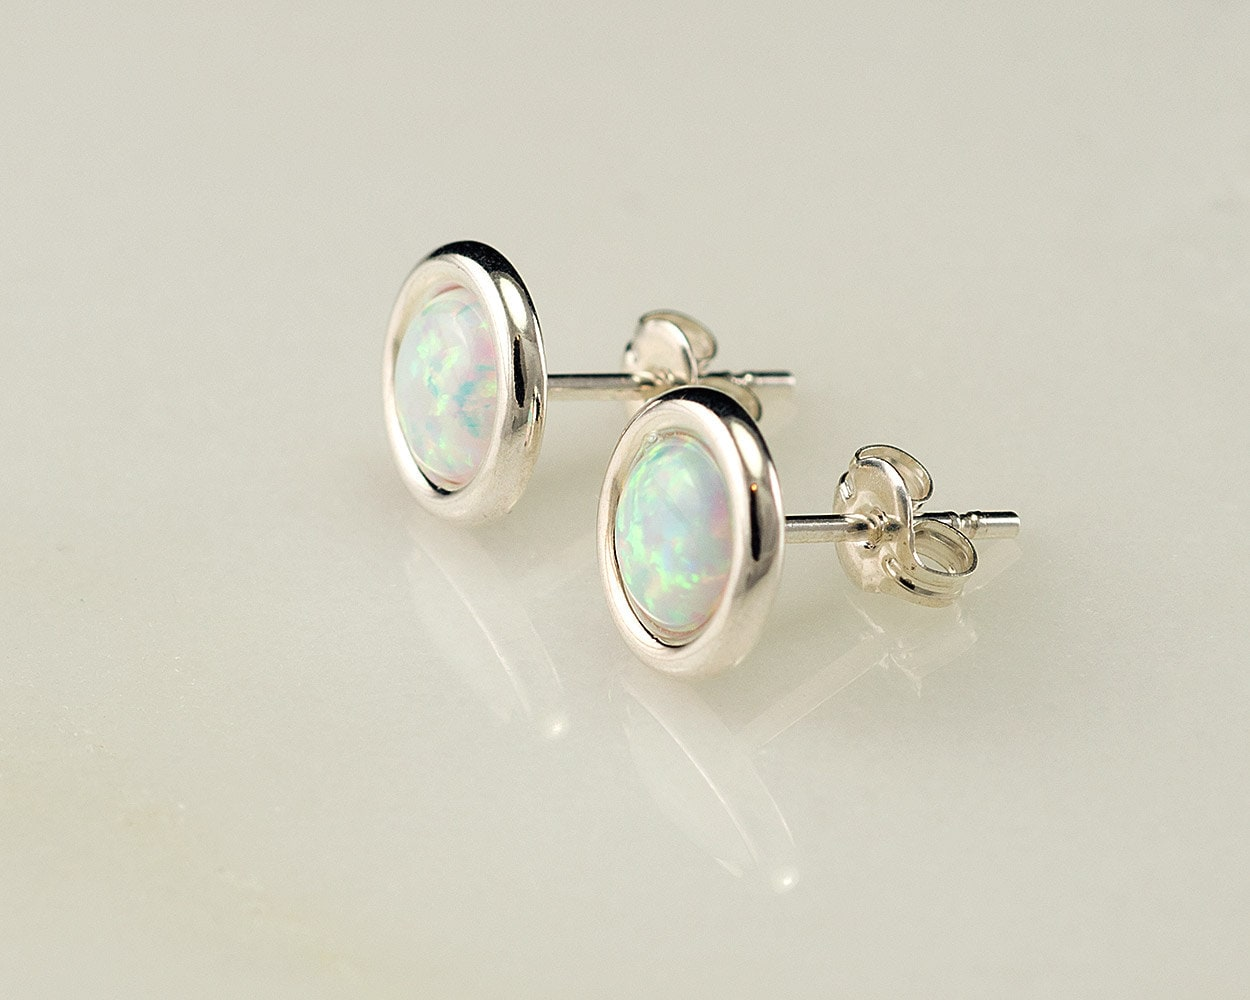 real studs sparkling multicolored il silver stud listing black fullxfull genuine fire nzou earrings opal